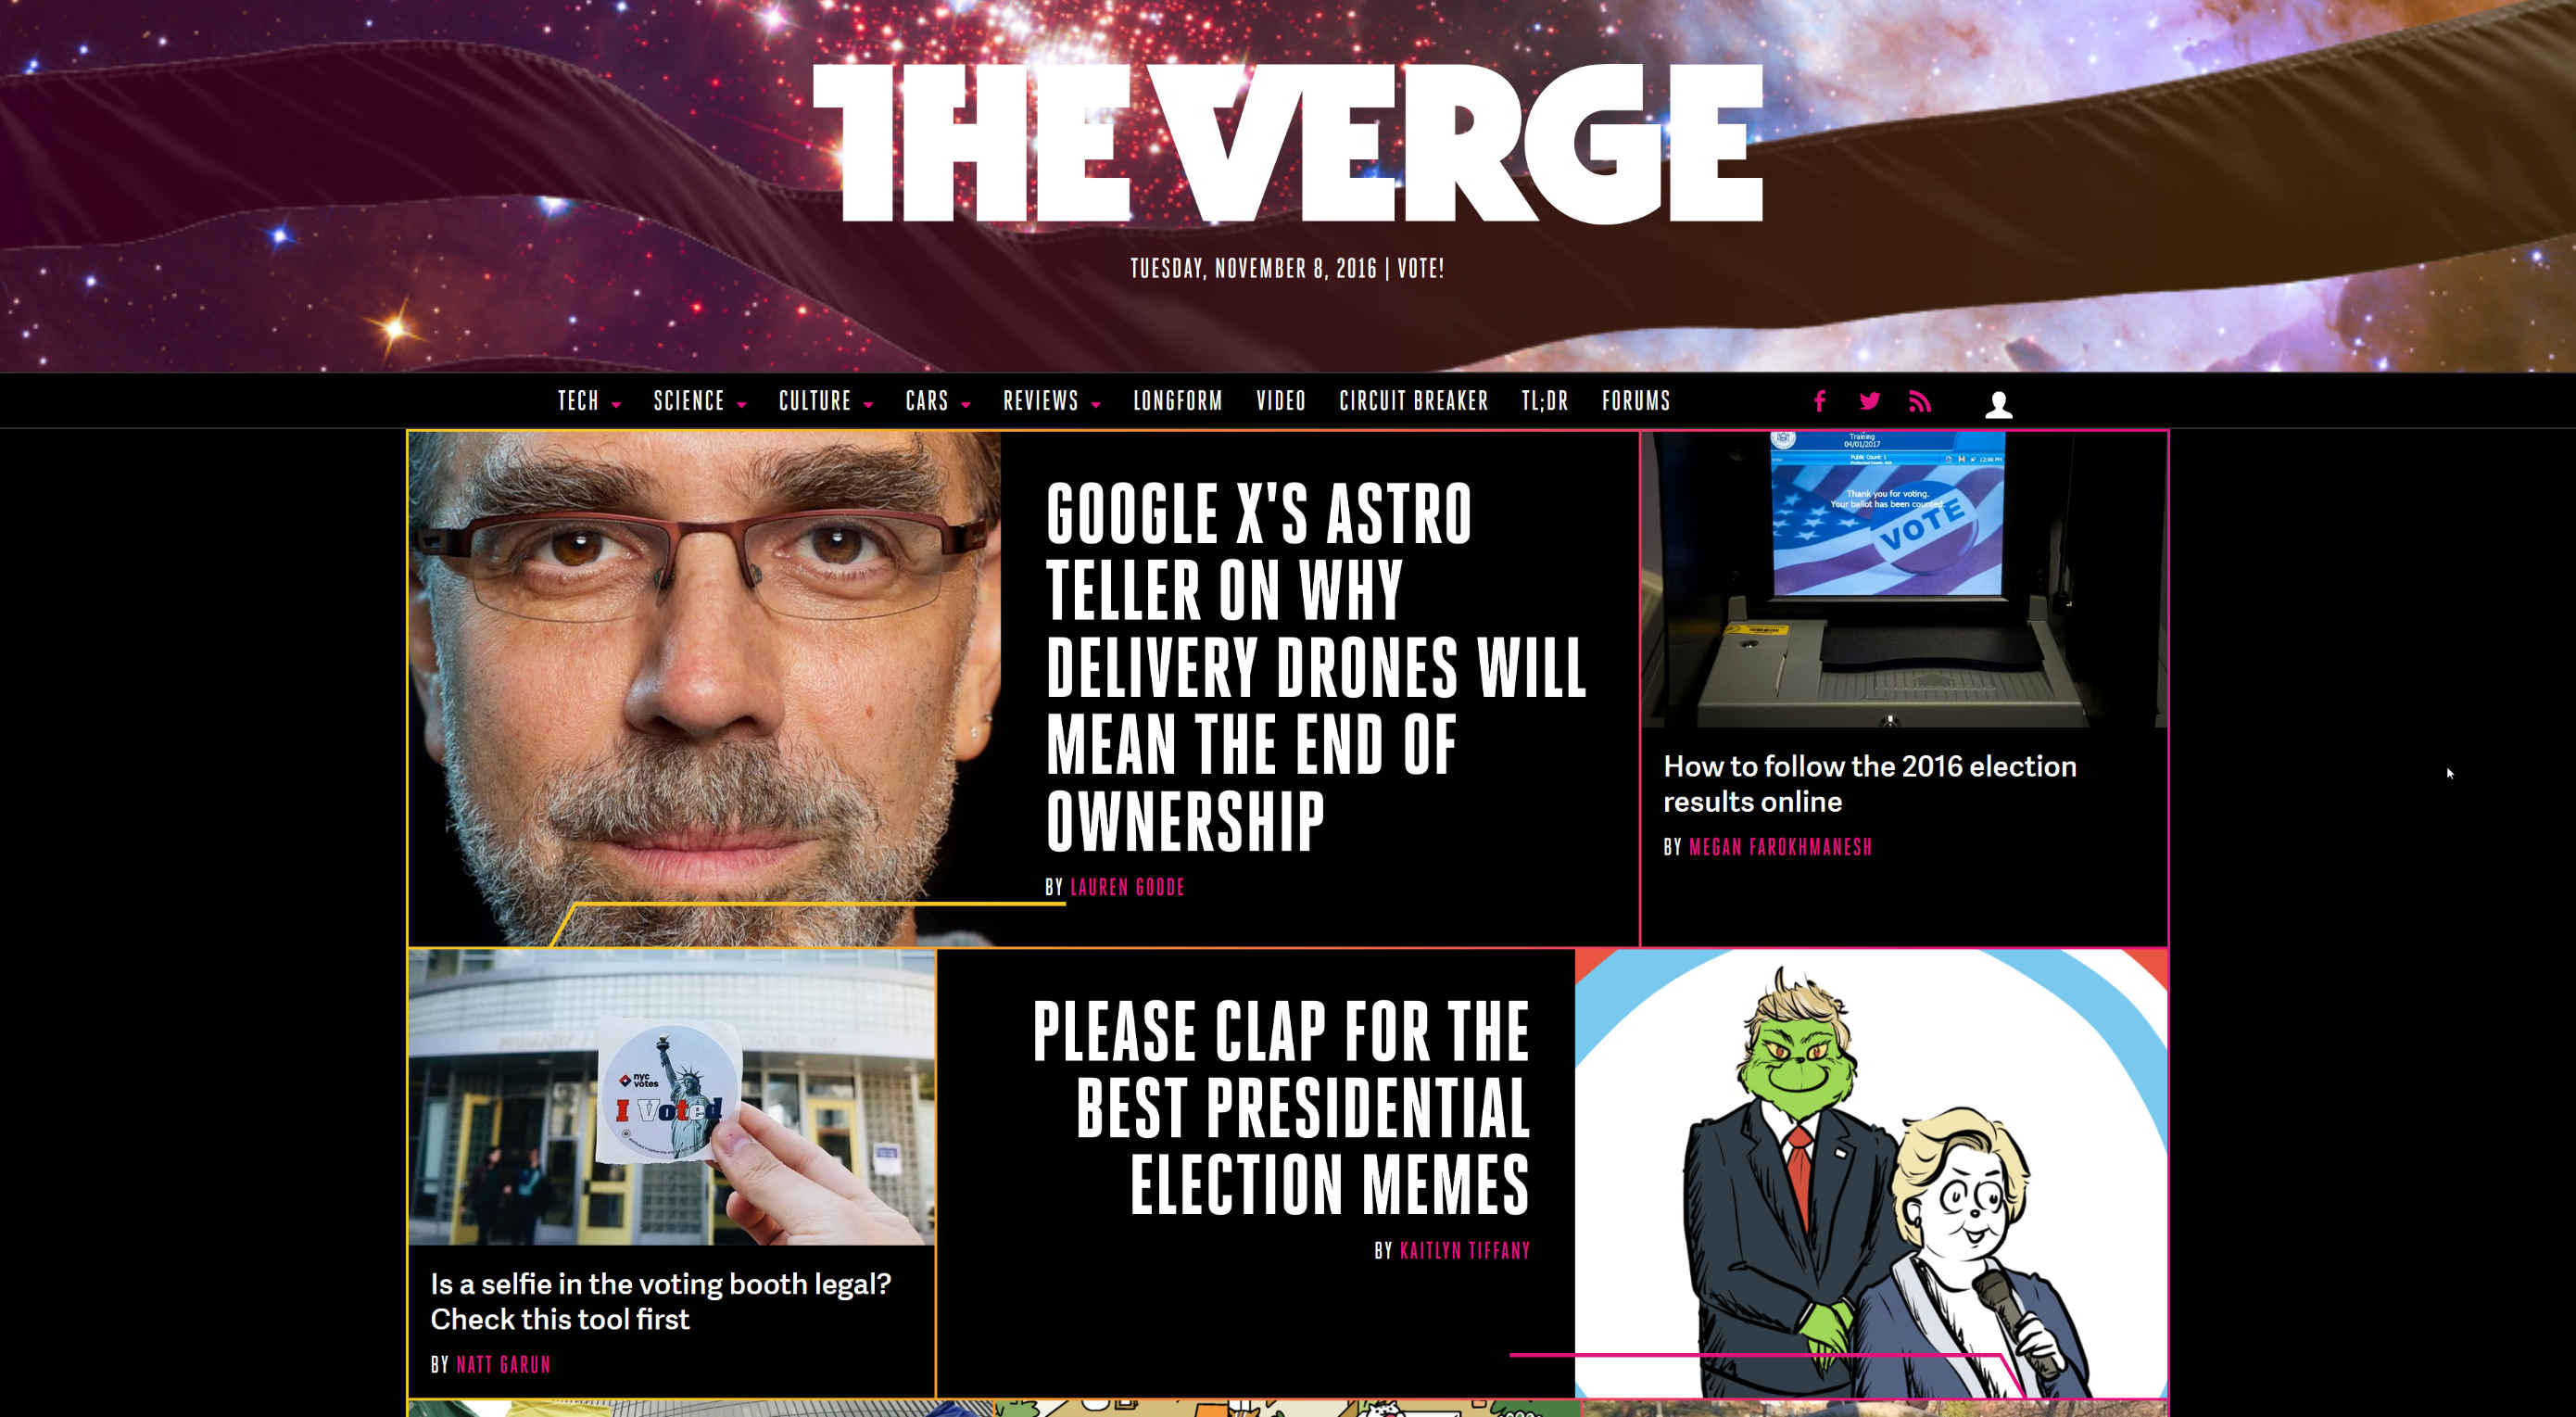 The Verge gets a redesign